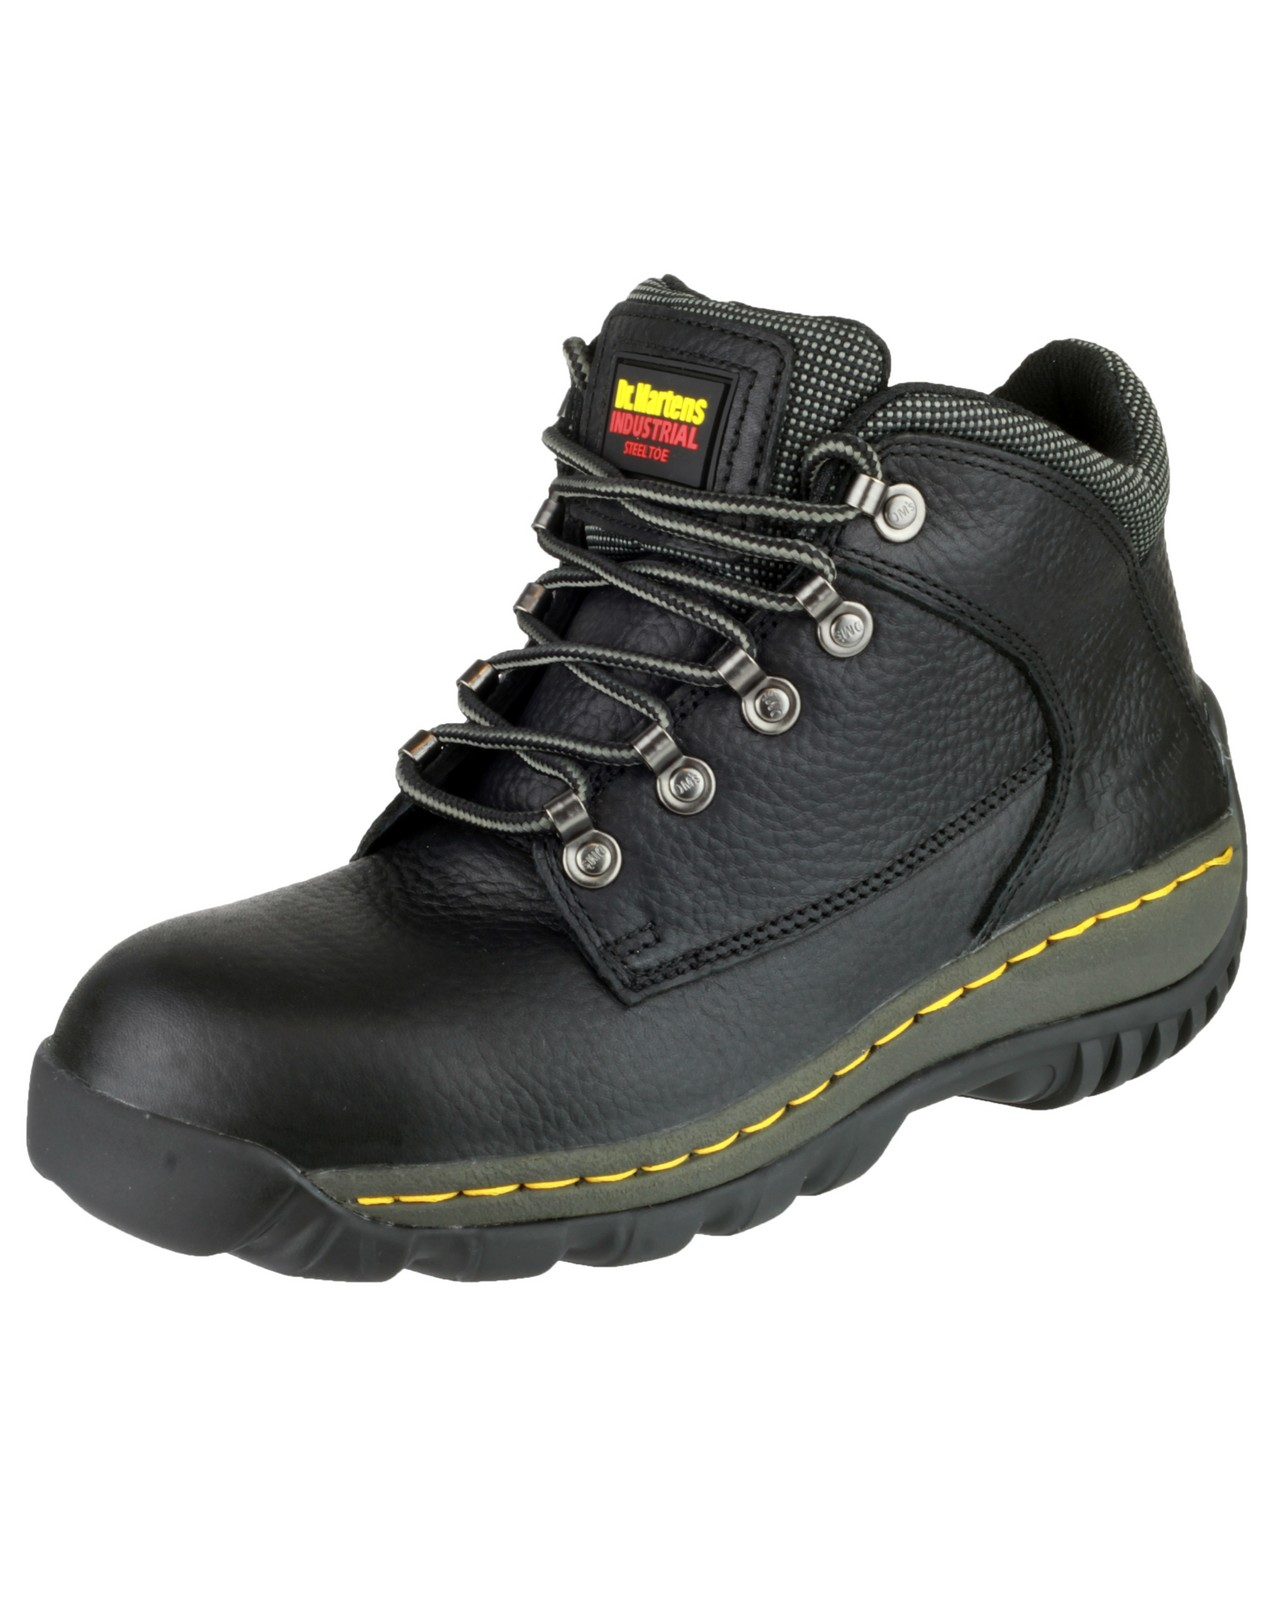 Doc Martin FS61 Mens Hiker Lace Up Black Safety Boot